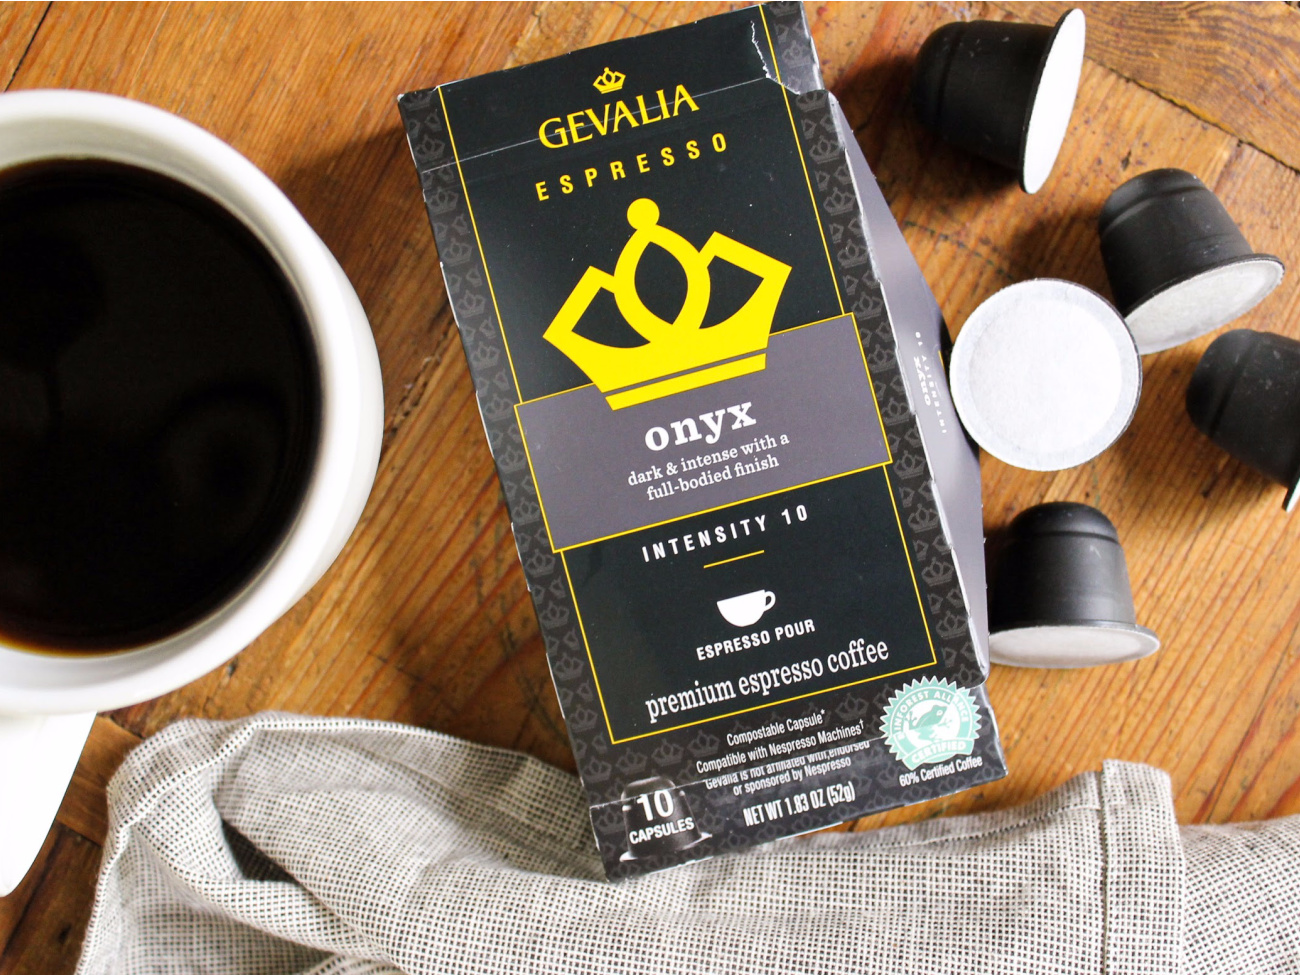 Gevalia Espresso Coffee Just $3.90 At Publix on I Heart Publix 1